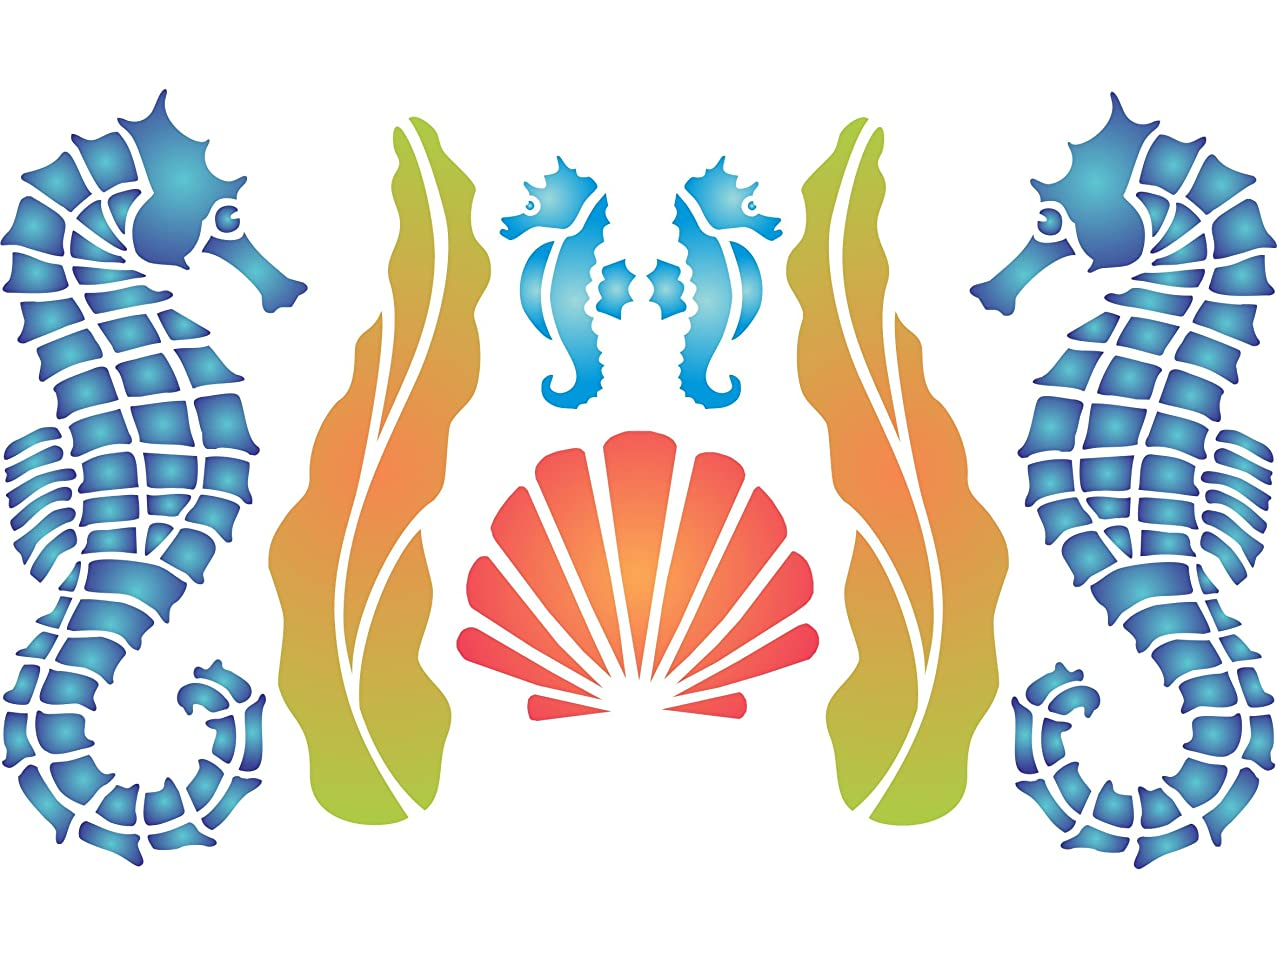 """Seahorse Stencil - (size 12.5""""w x 6.5""""h) Reusable Wall Stencils for Painting - Best Quality Wall Fish Animal Stencil Ideas - Use on Walls, Floors, Fabrics, Glass, Wood, Terracotta, and More…"""